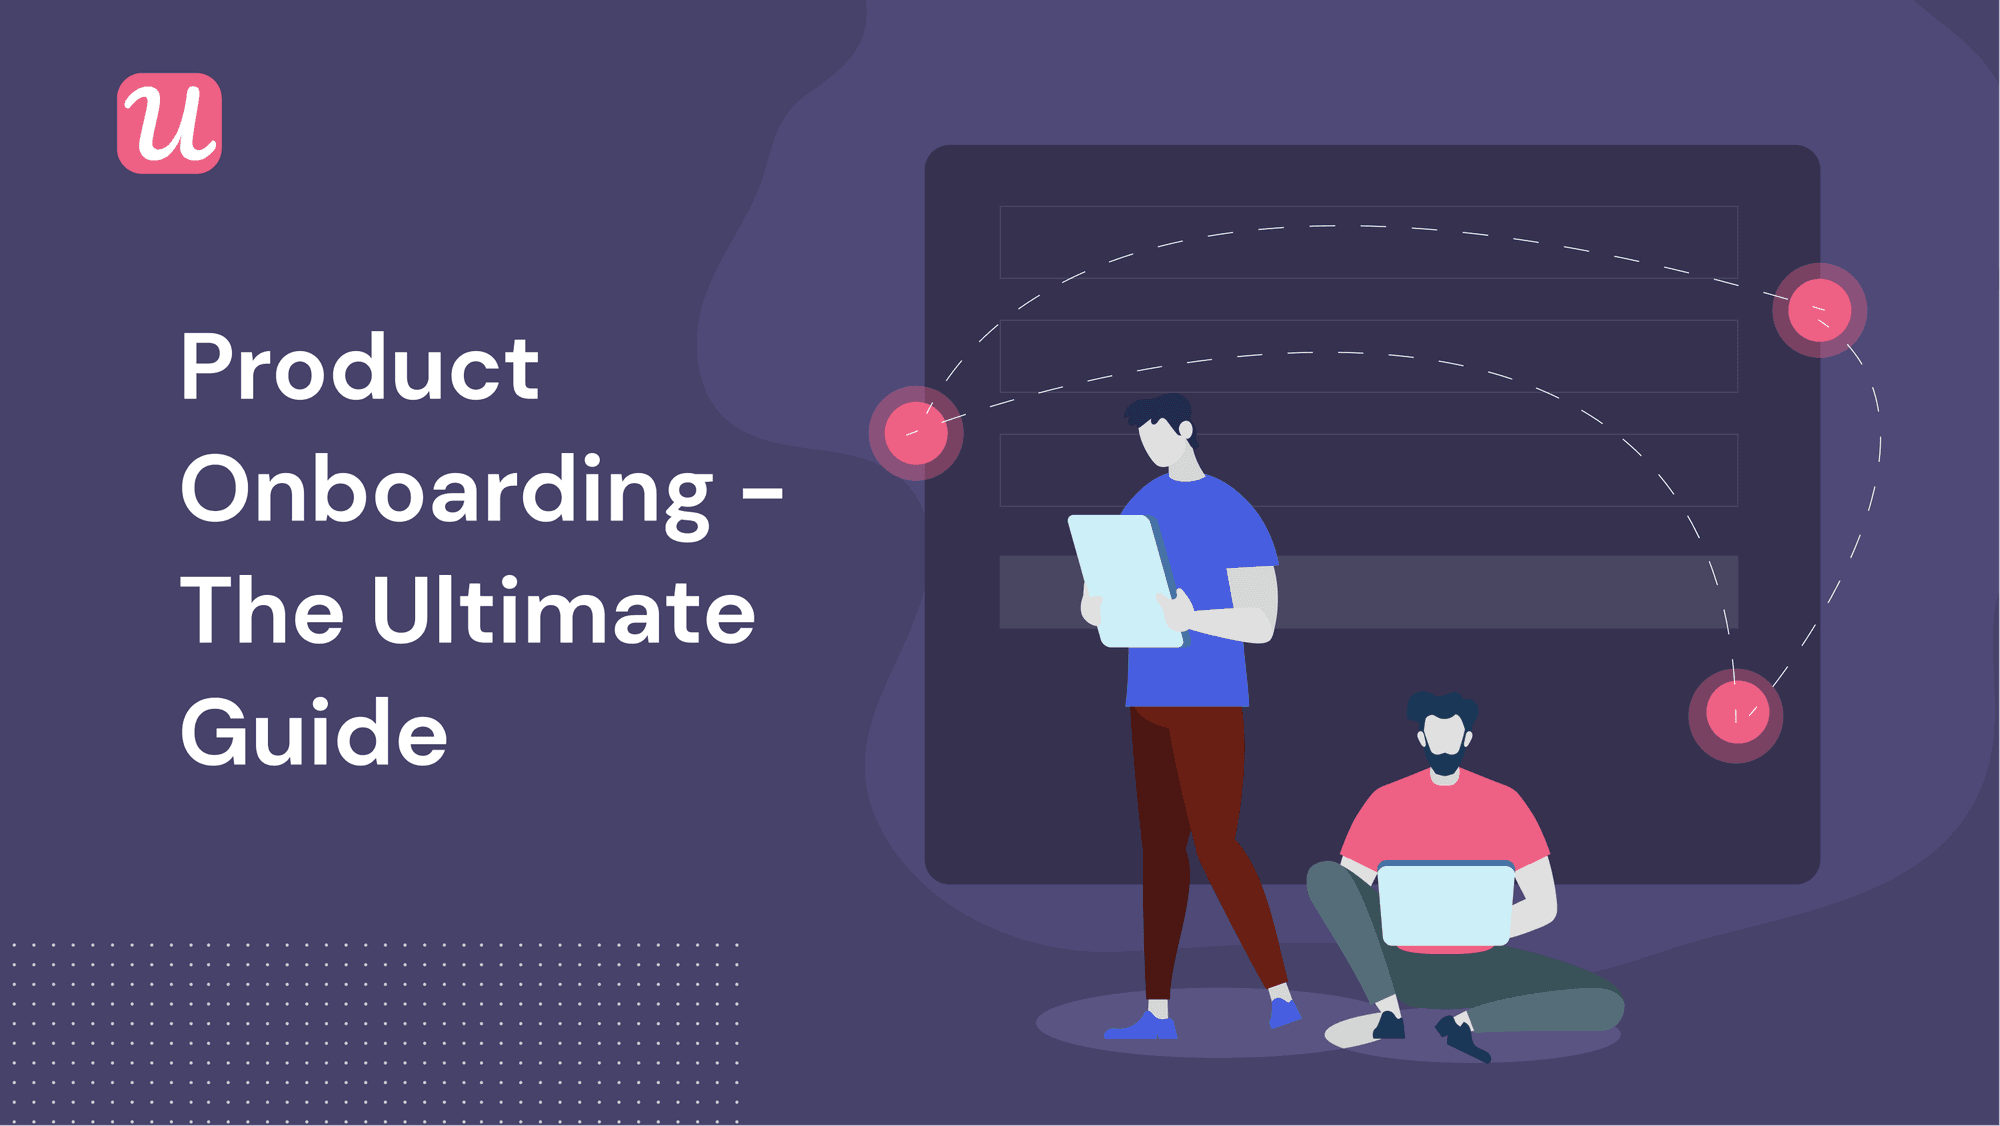 The Ultimate Guide To Product Onboarding For SaaS